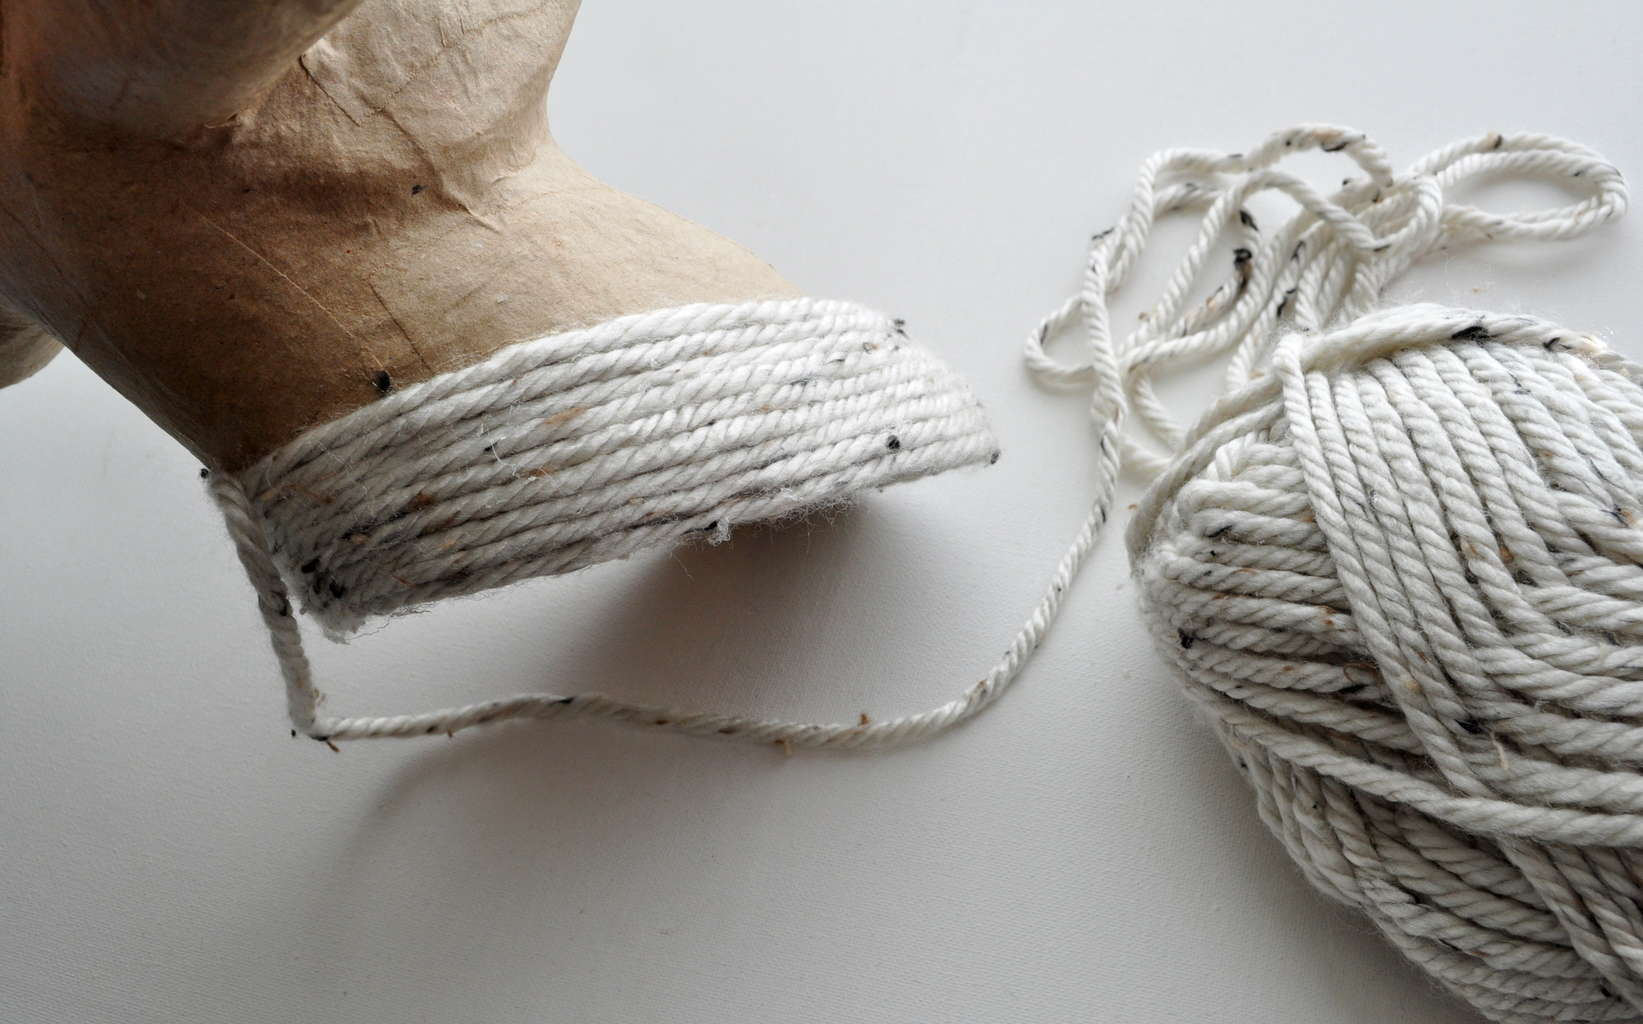 Work up the yarn in rows